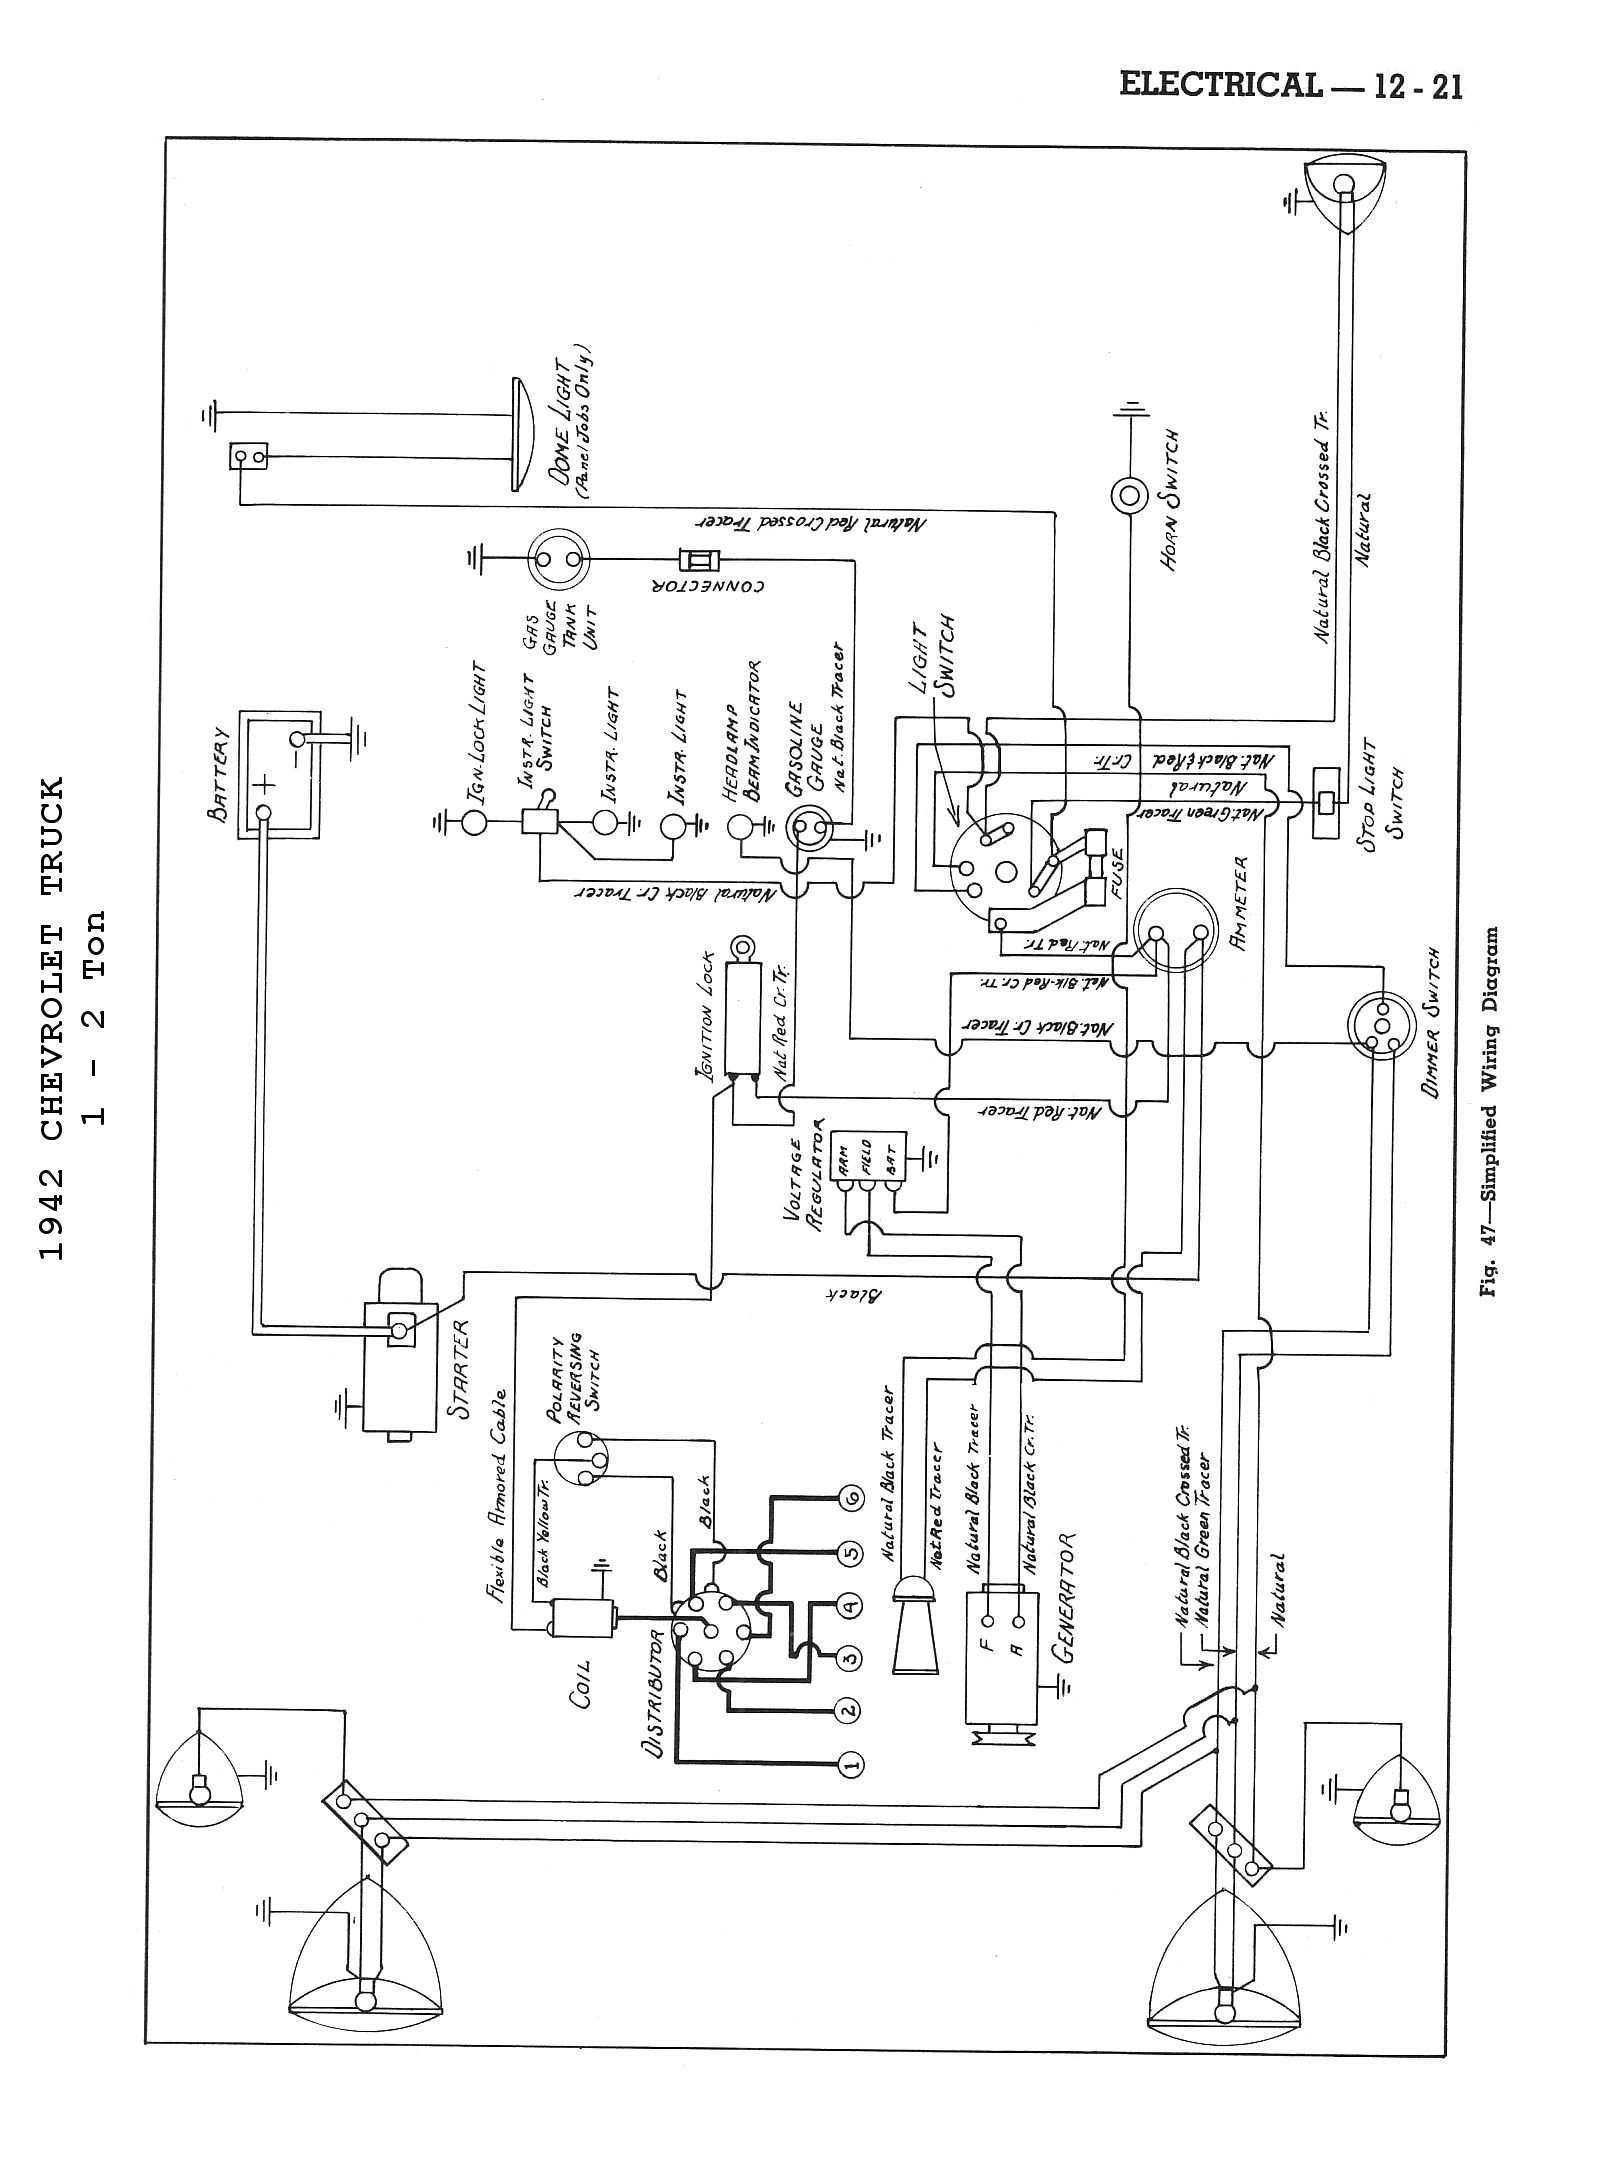 chevy truck wiring diagram on 1984 chevy s10 blazer wiring diagram